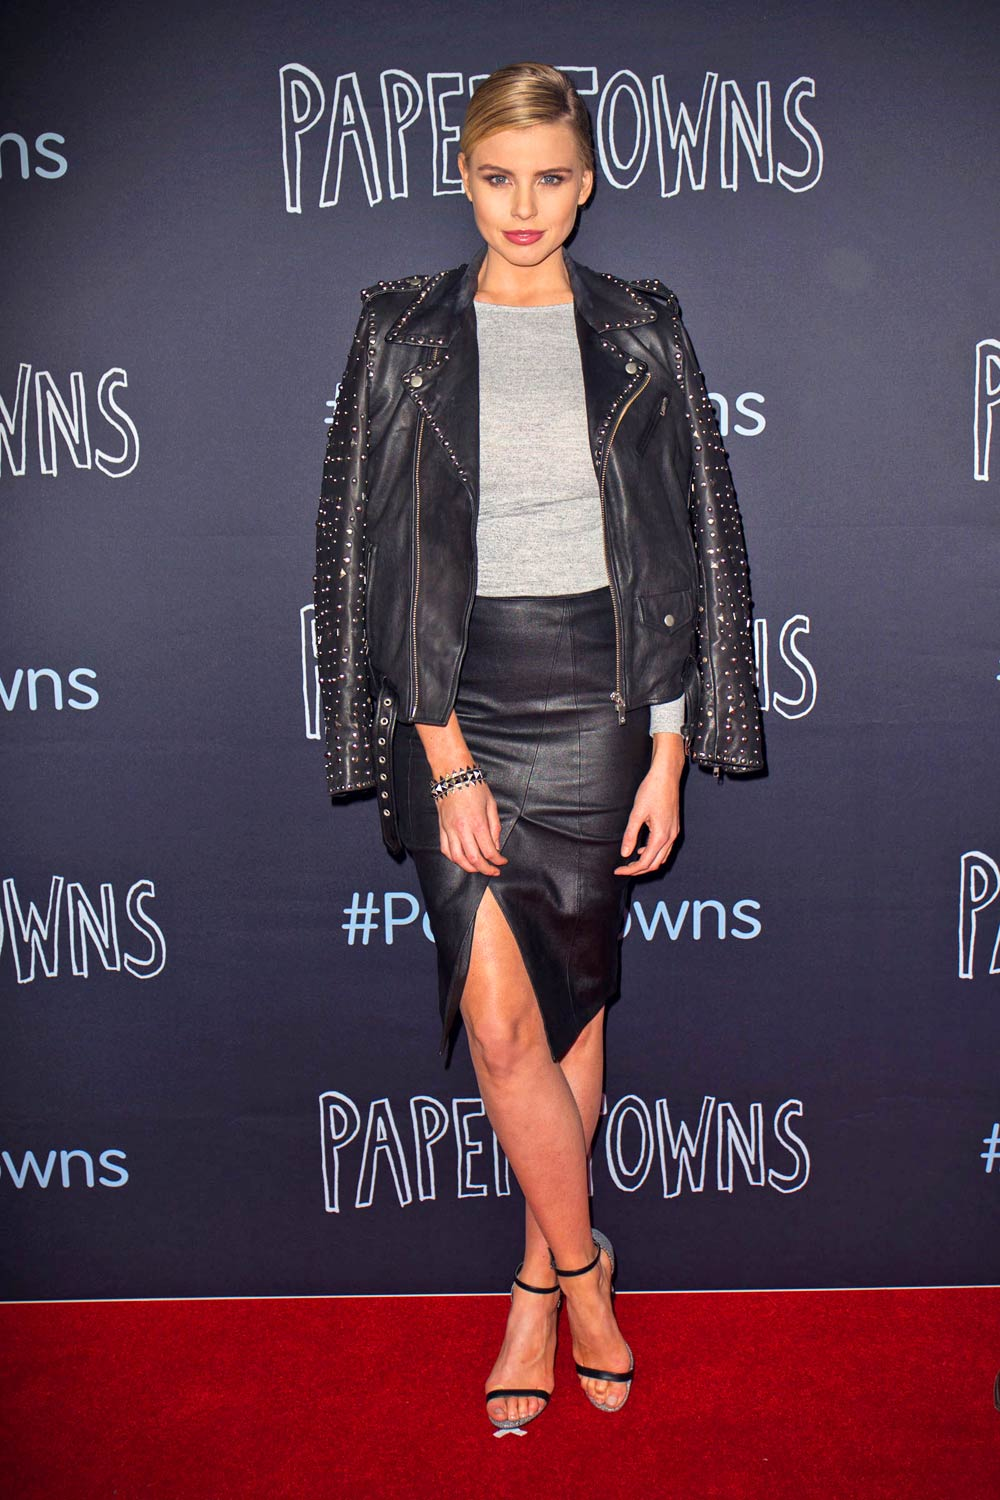 Tegan Martin arrives at the Paper Towns Australian premiere